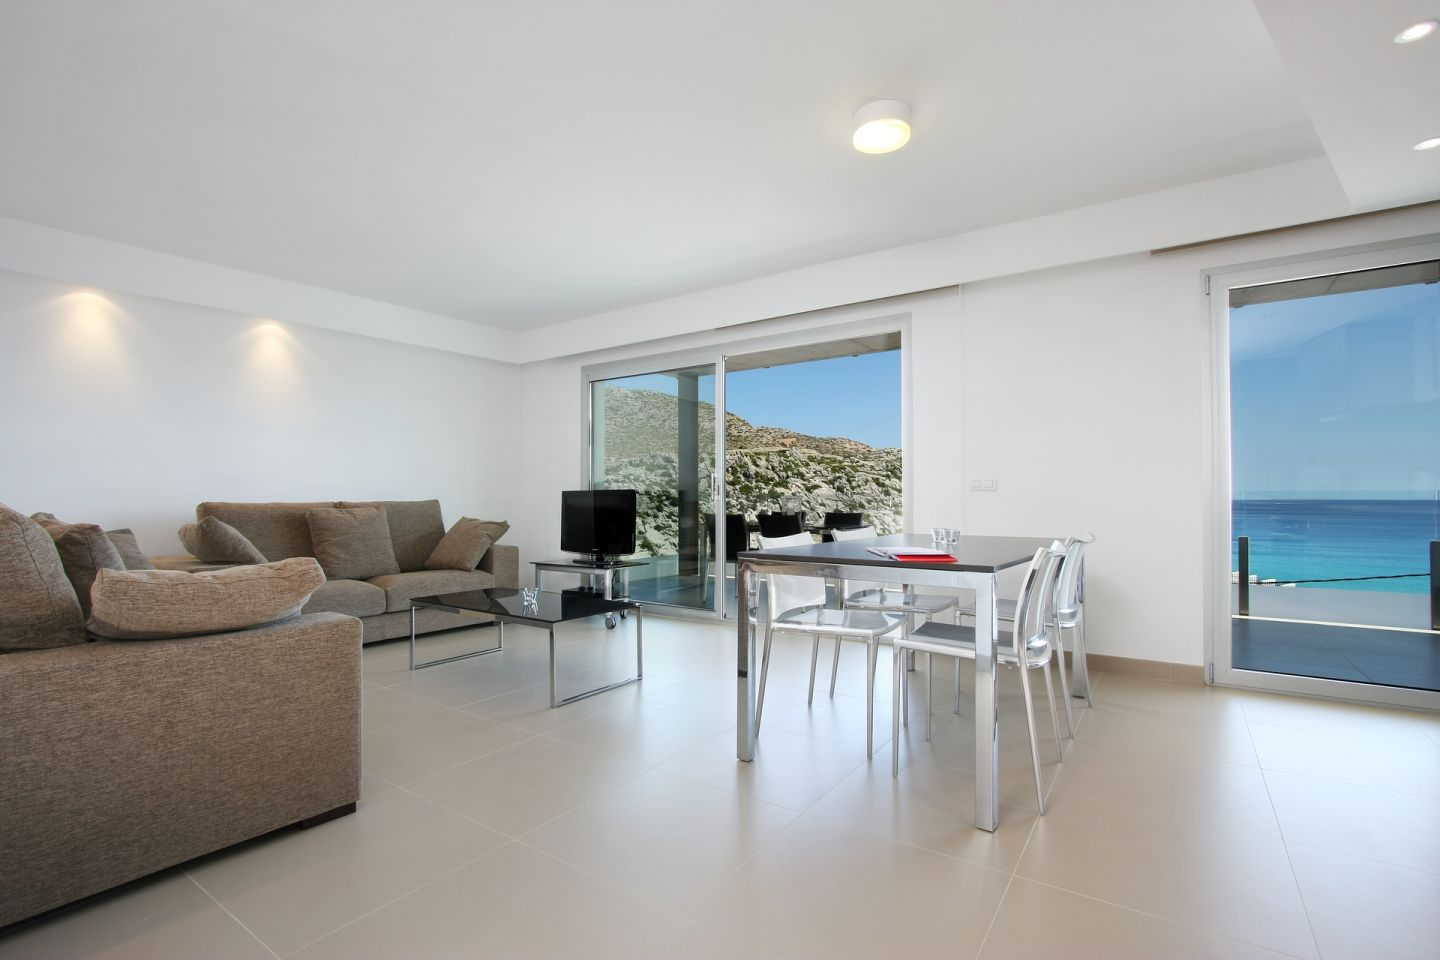 2 Bed Other for sale in Cala San Vicente 5